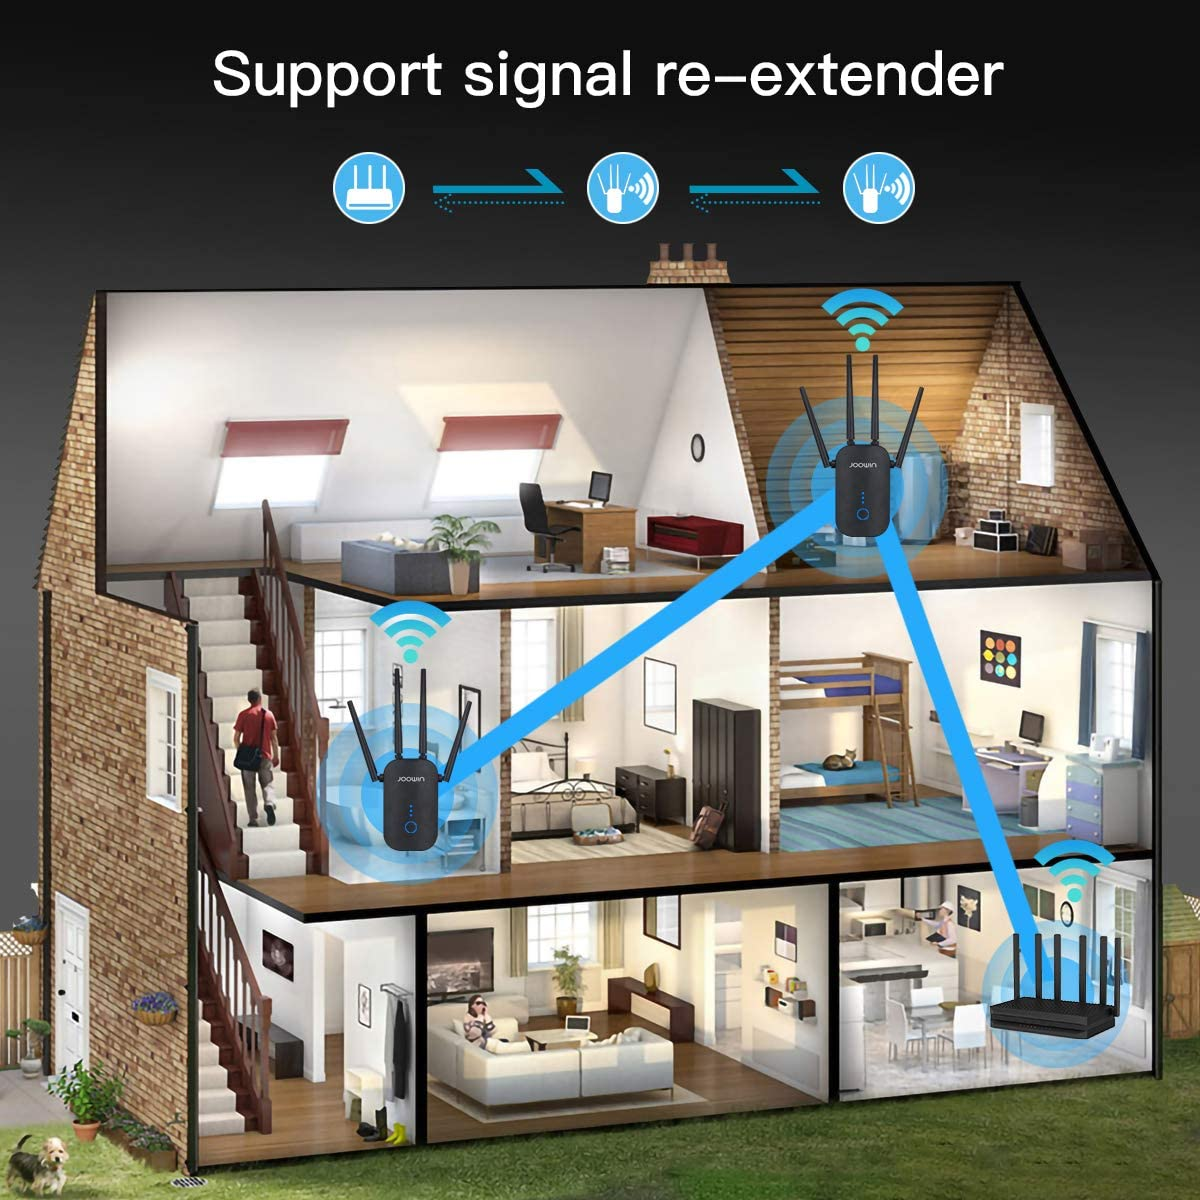 2.4 /& 5GHz Dual Band WiFi Extender Wireless Signal Booster with Gigabit Ethernet Port 1200Mbps WiFi Repeater Easy to Install 360/° Full Coverage WiFi Range Extender Repeater WiFi Range Extender